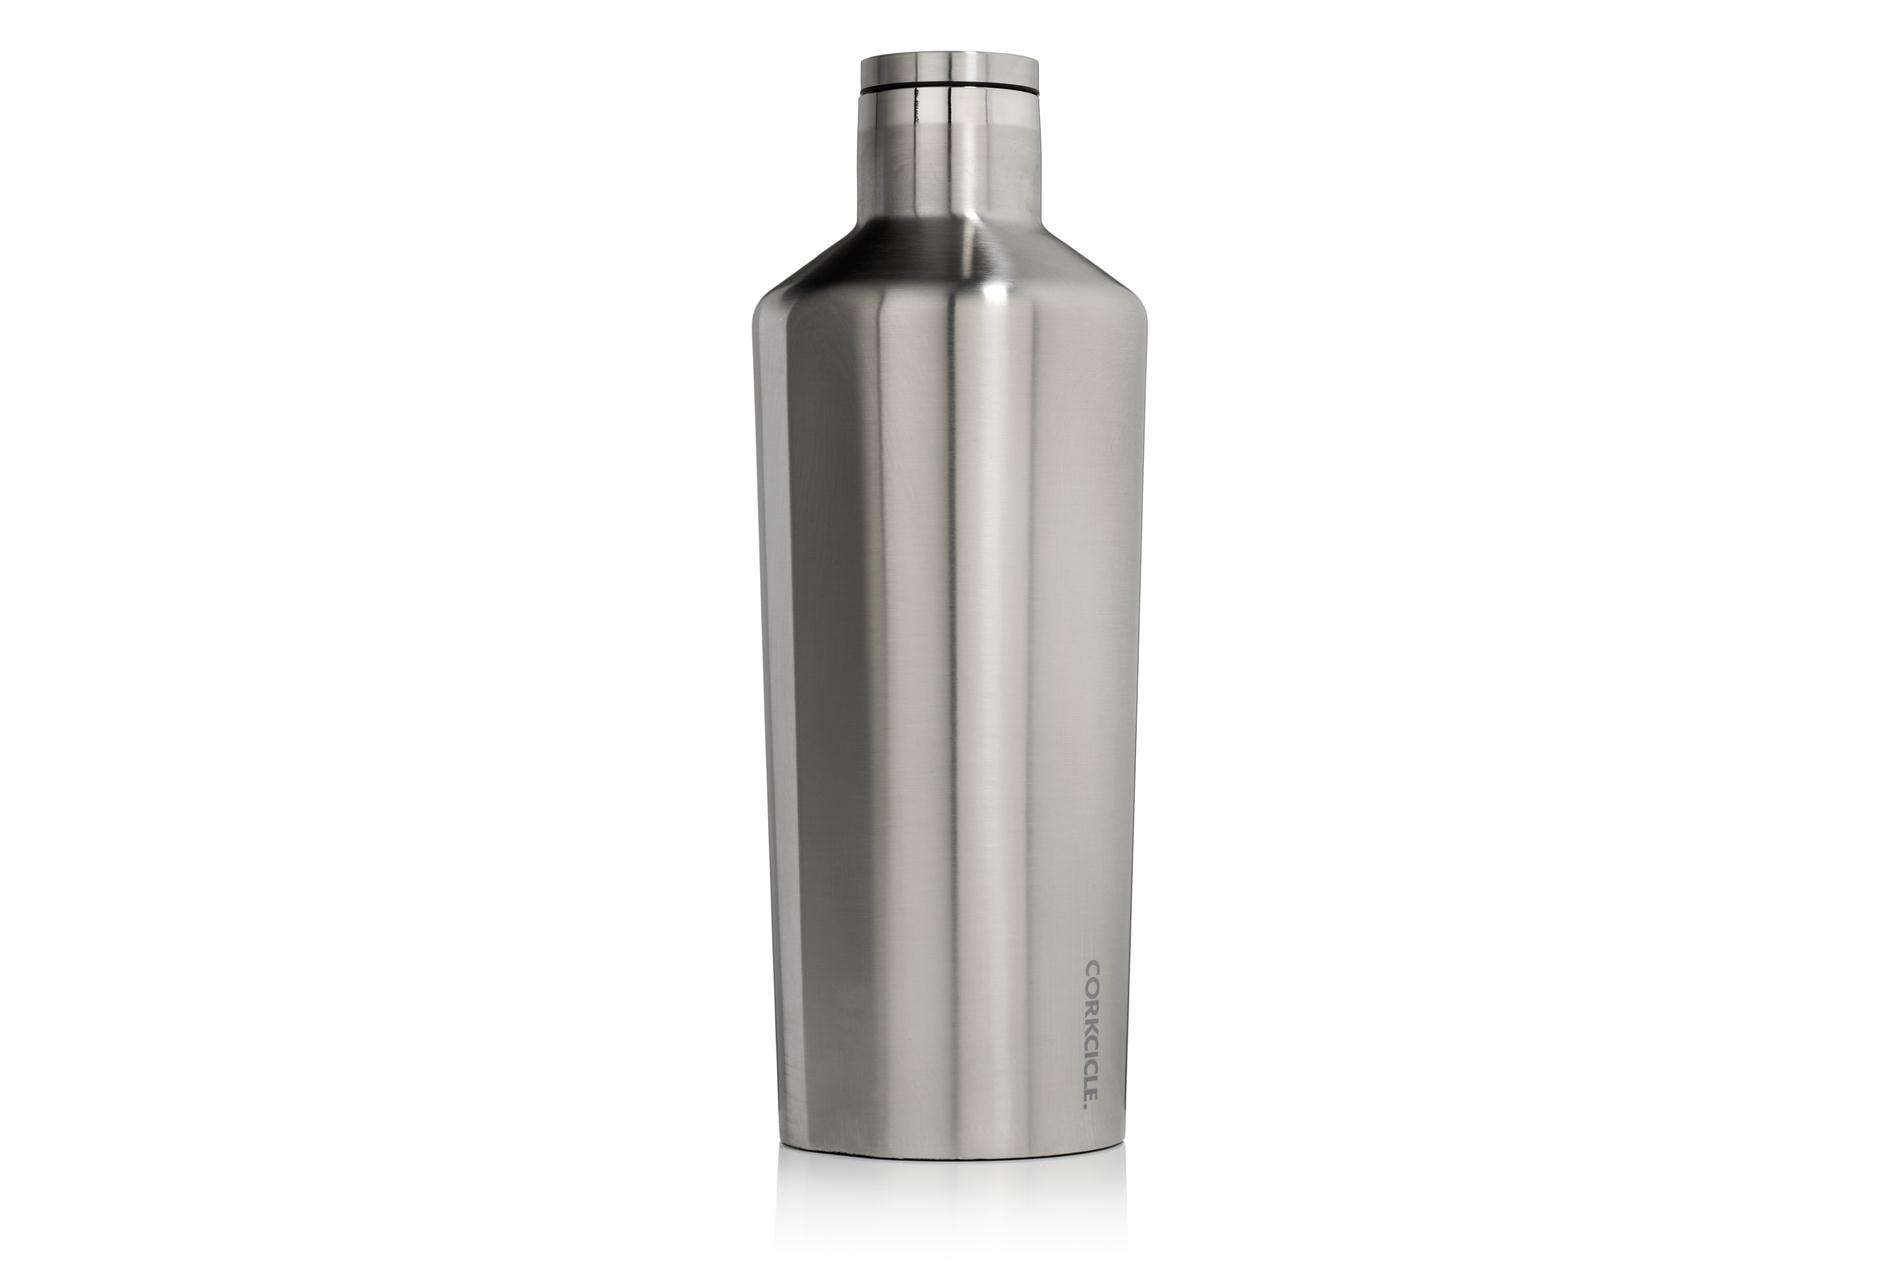 corkcicle trinkflasche thermo isolierflasche brushed steel 1280x1280 2x